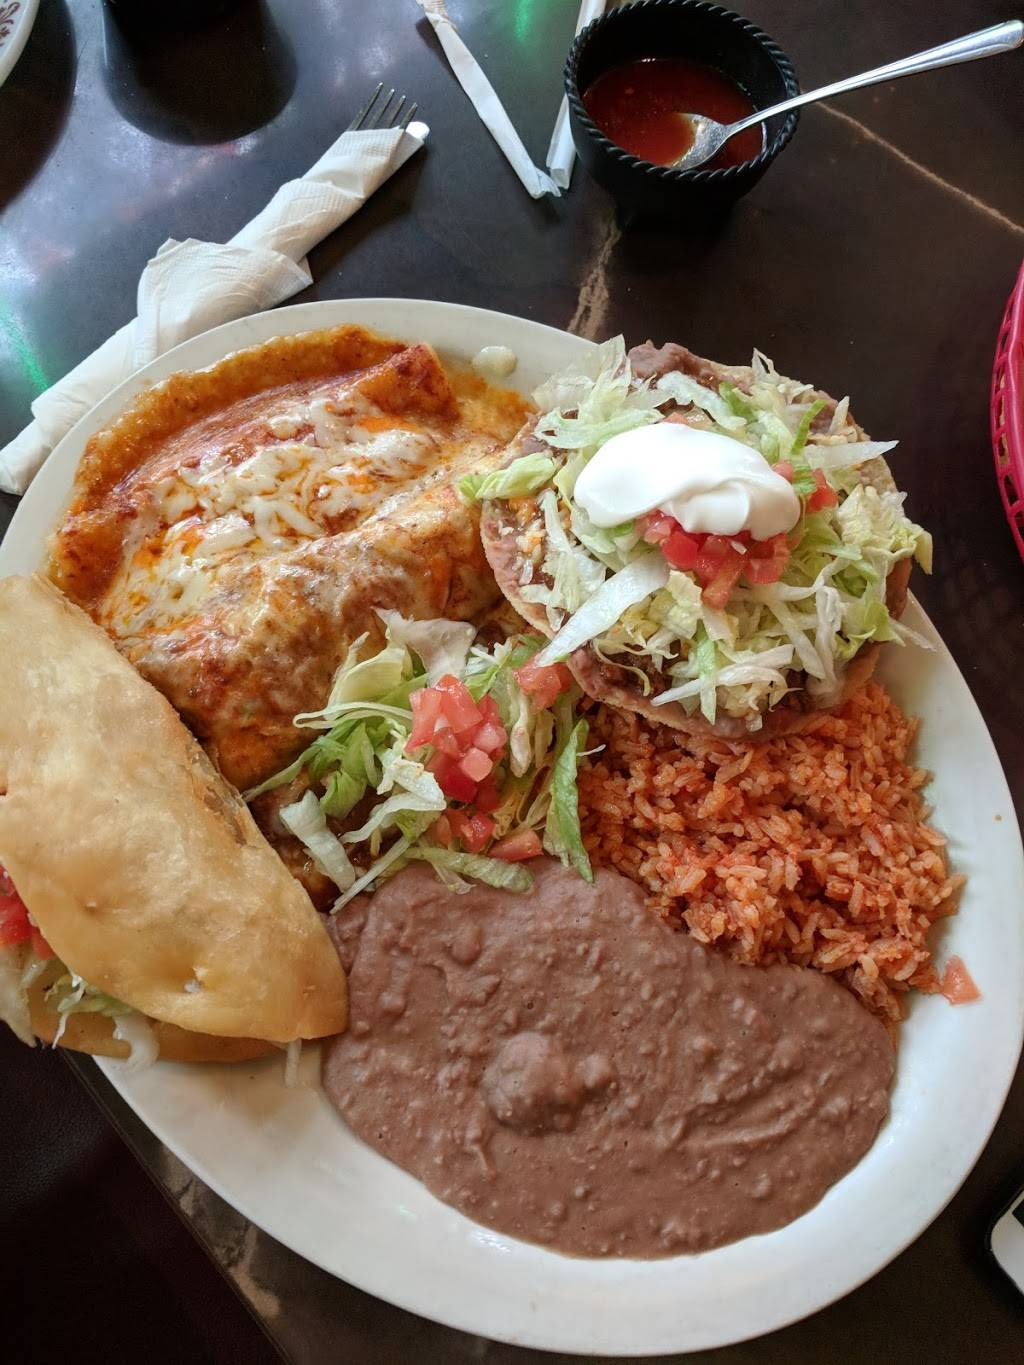 La Hacienda | restaurant | 20355 Van Born Rd, Taylor, MI 48180, USA | 3135626420 OR +1 313-562-6420